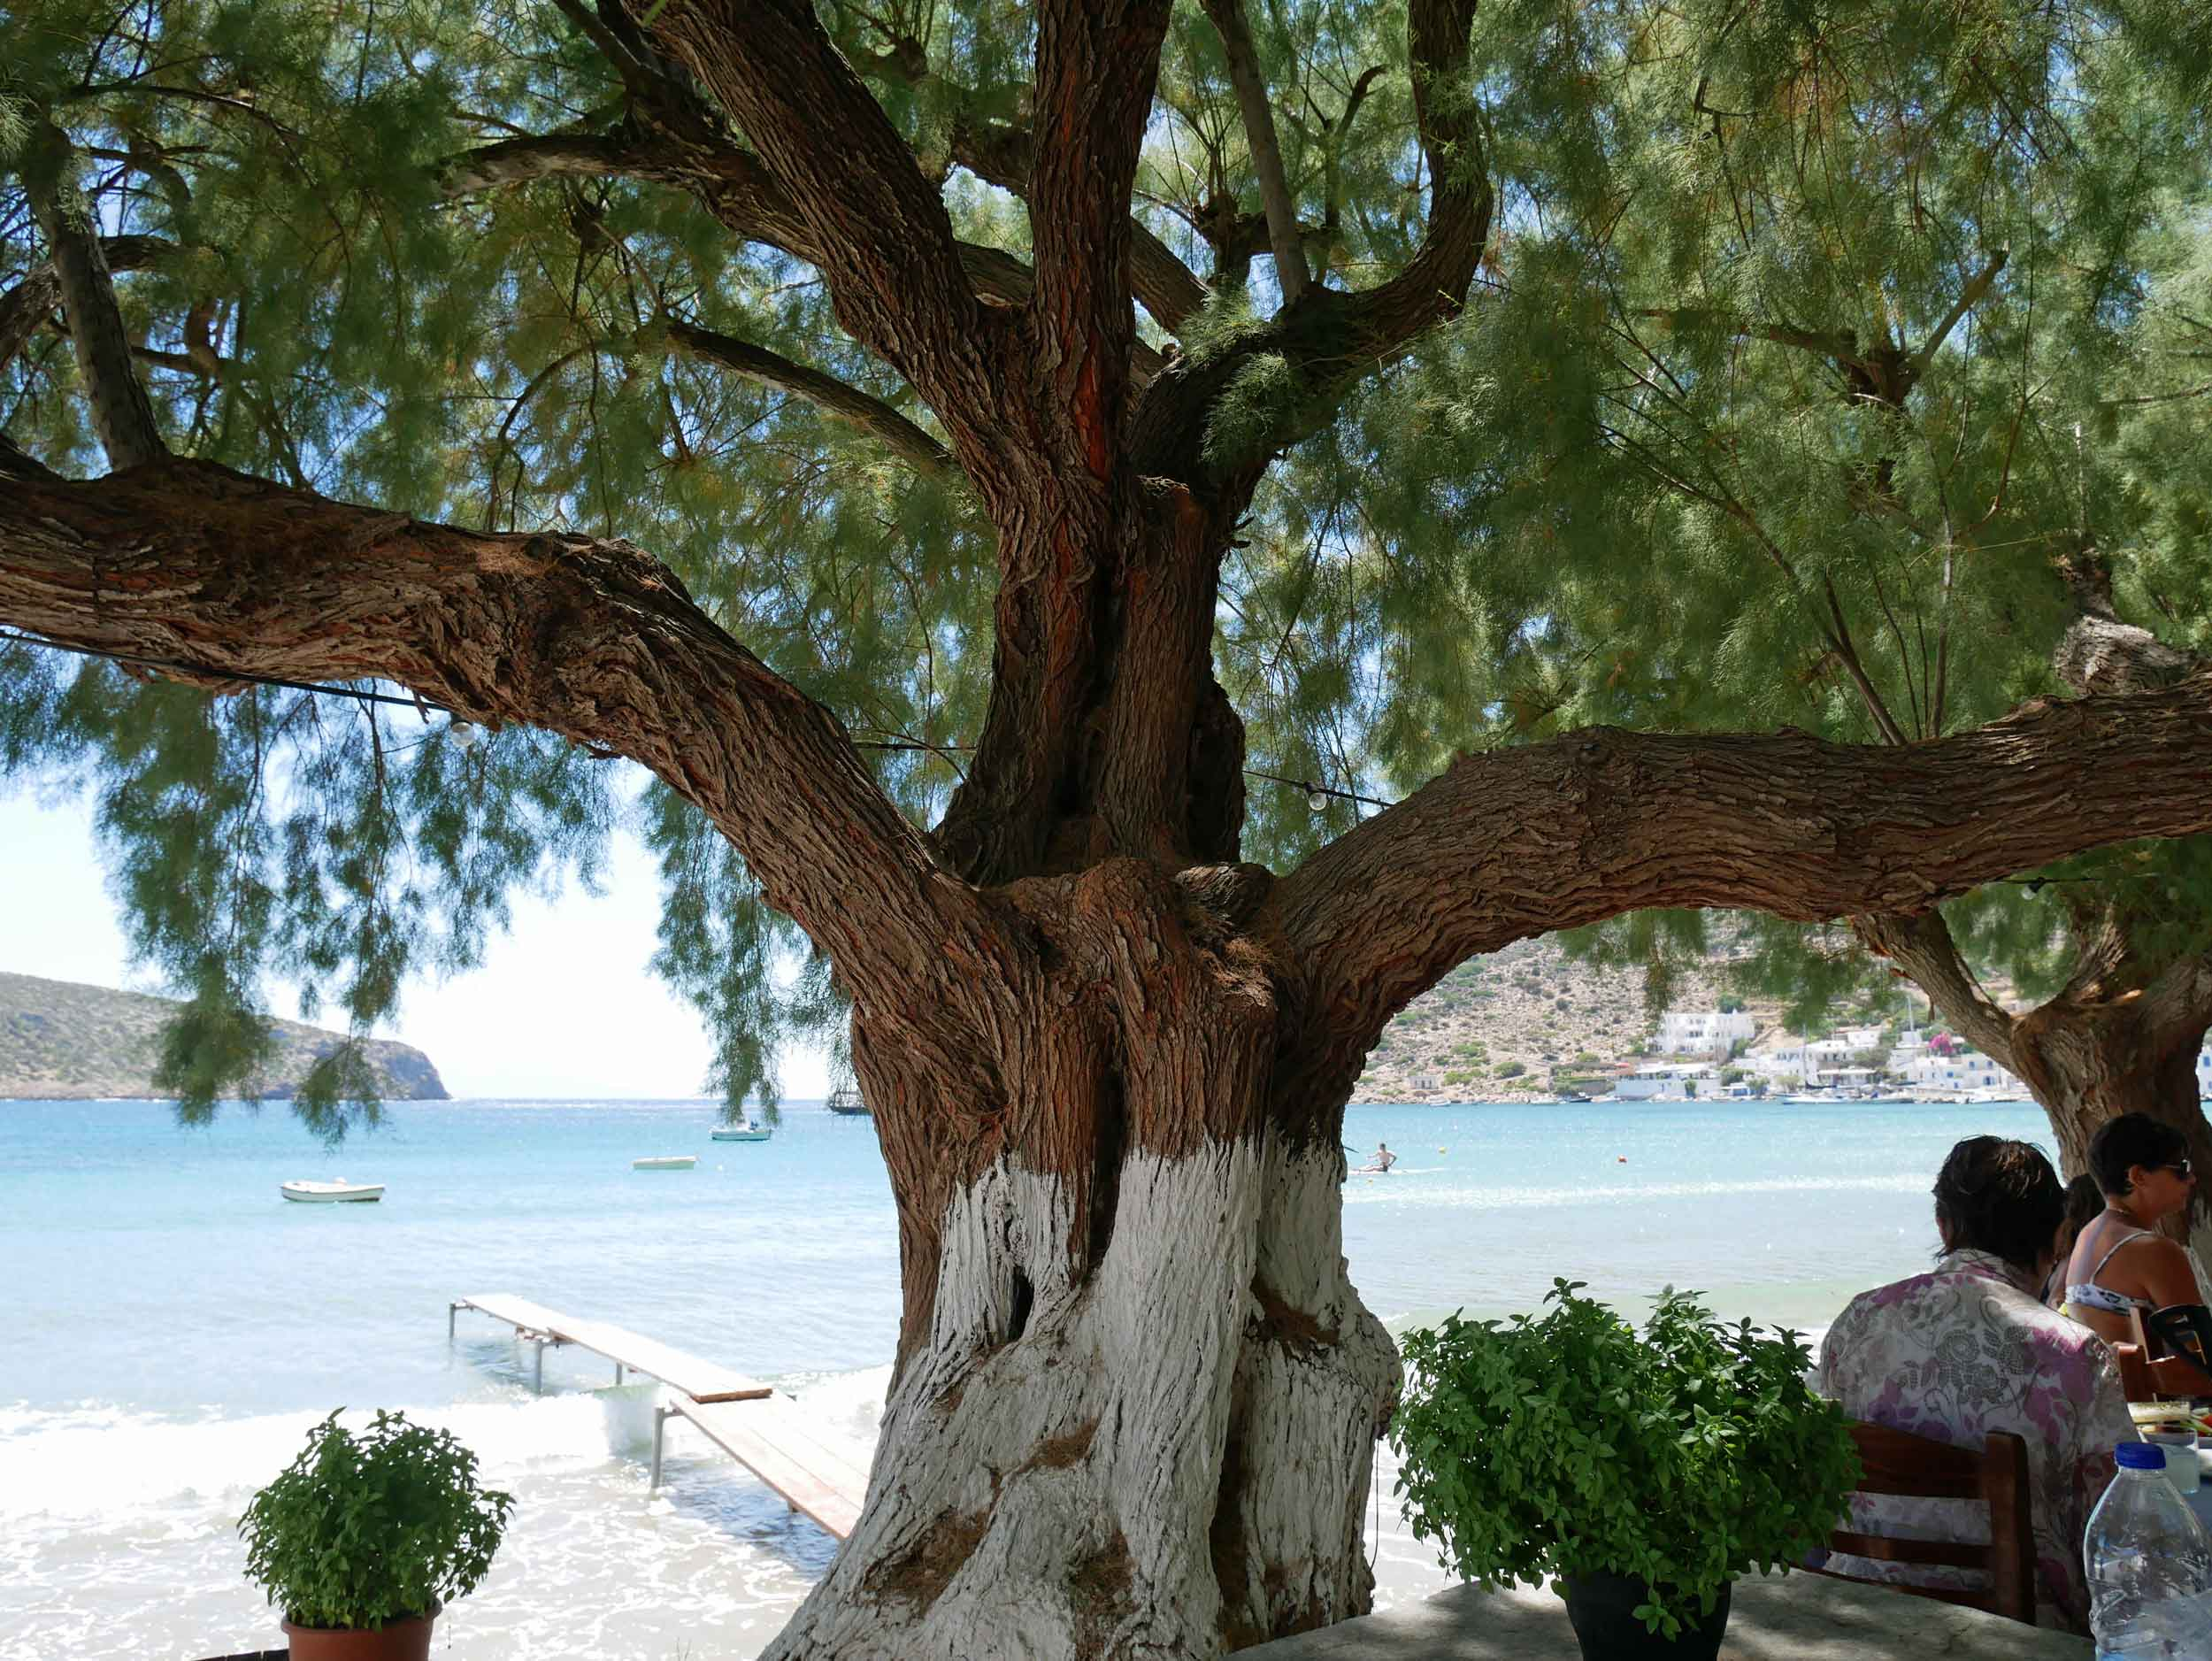 At our local lunch spot, Manolis, we dined al fresco under these beautiful trees!